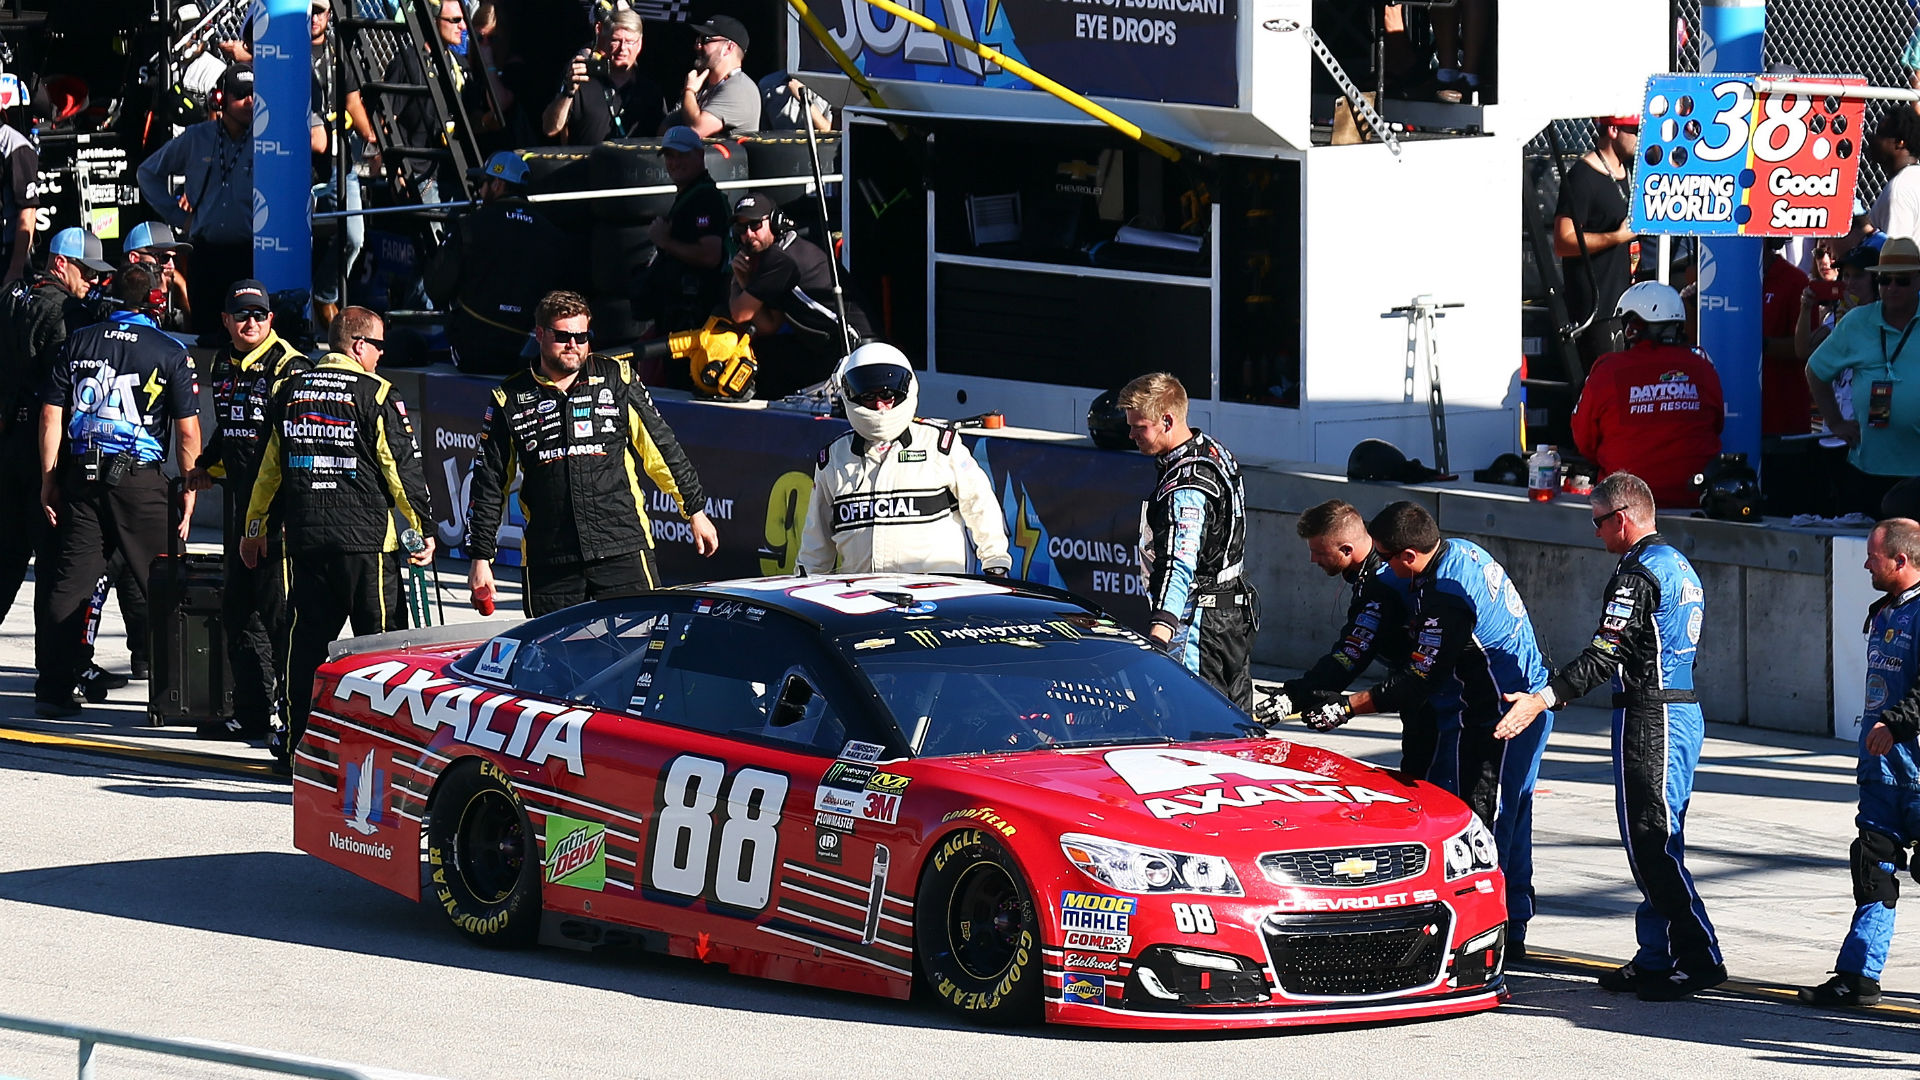 Watch: NASCAR pit crews salute Dale Earnhardt Jr. as they once did for his father at Daytona